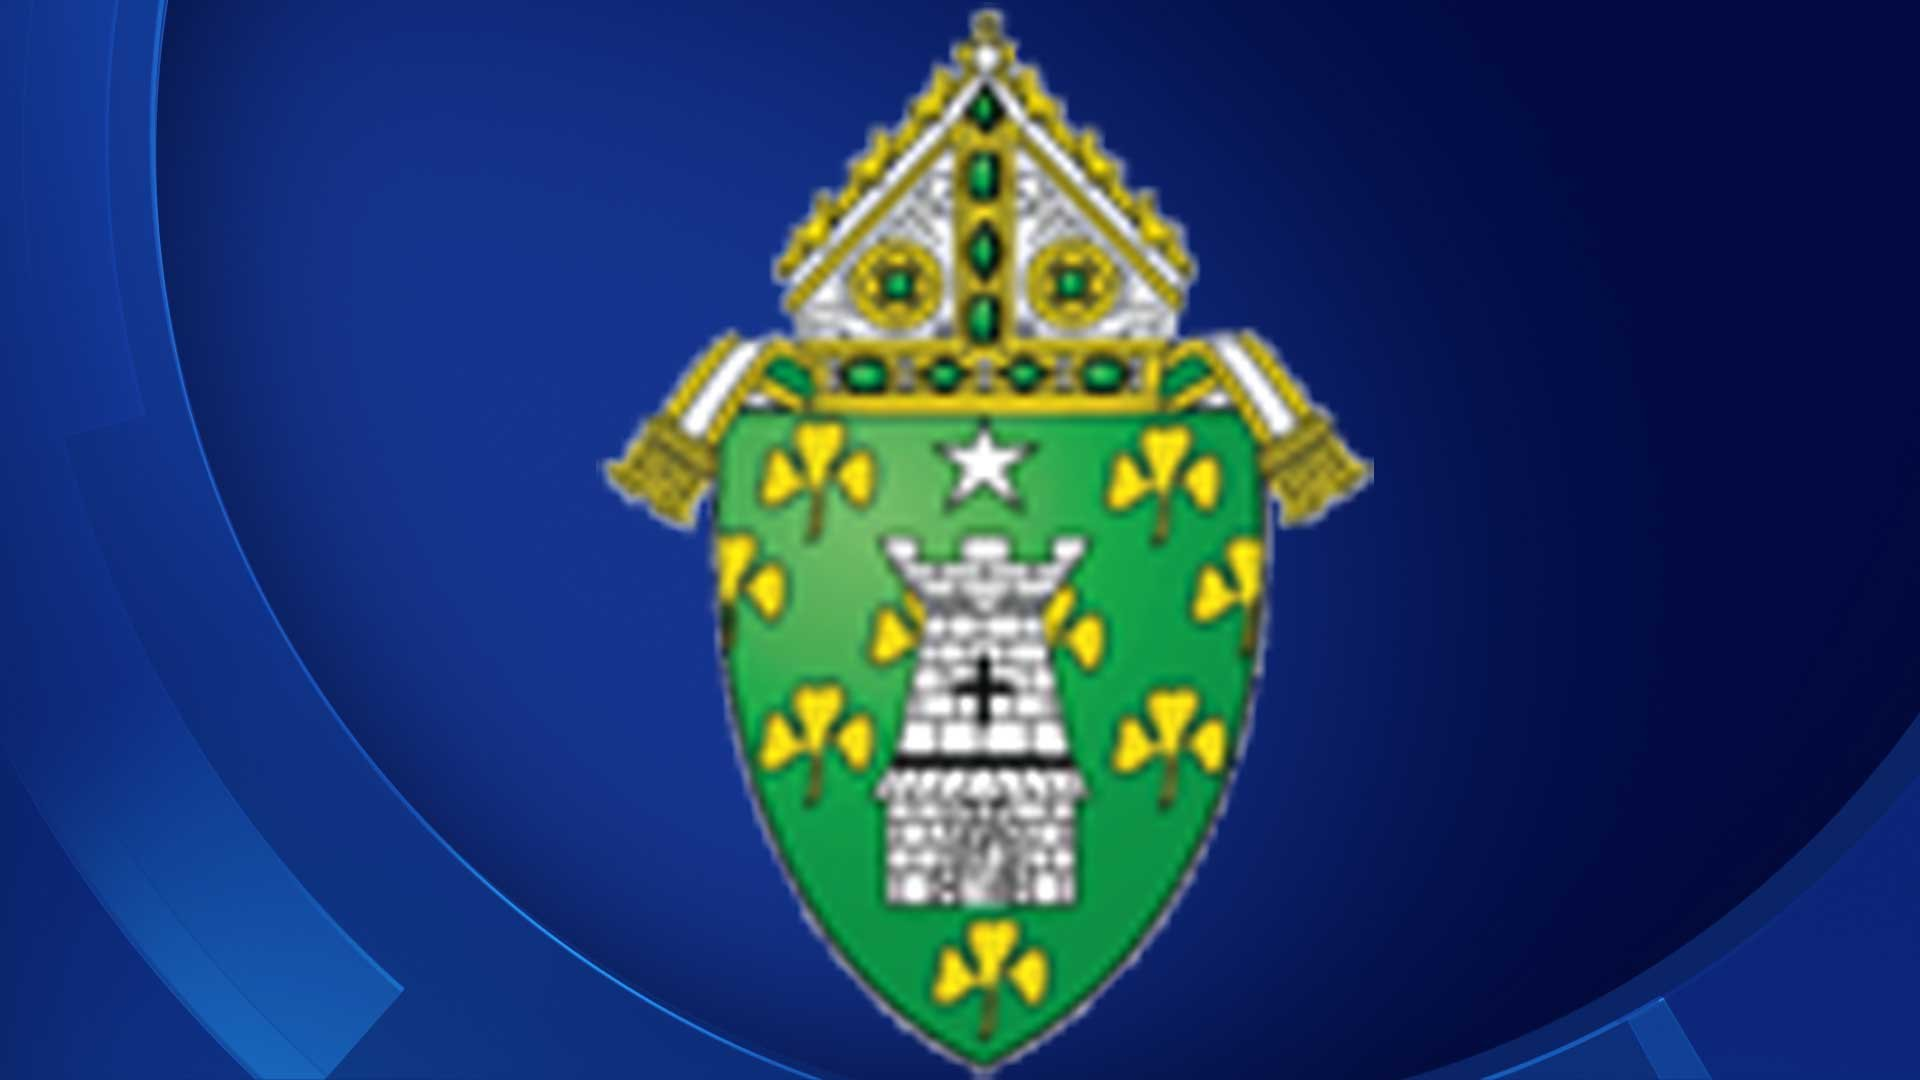 Diocese of Norwich will merge four parishes in the coming months.